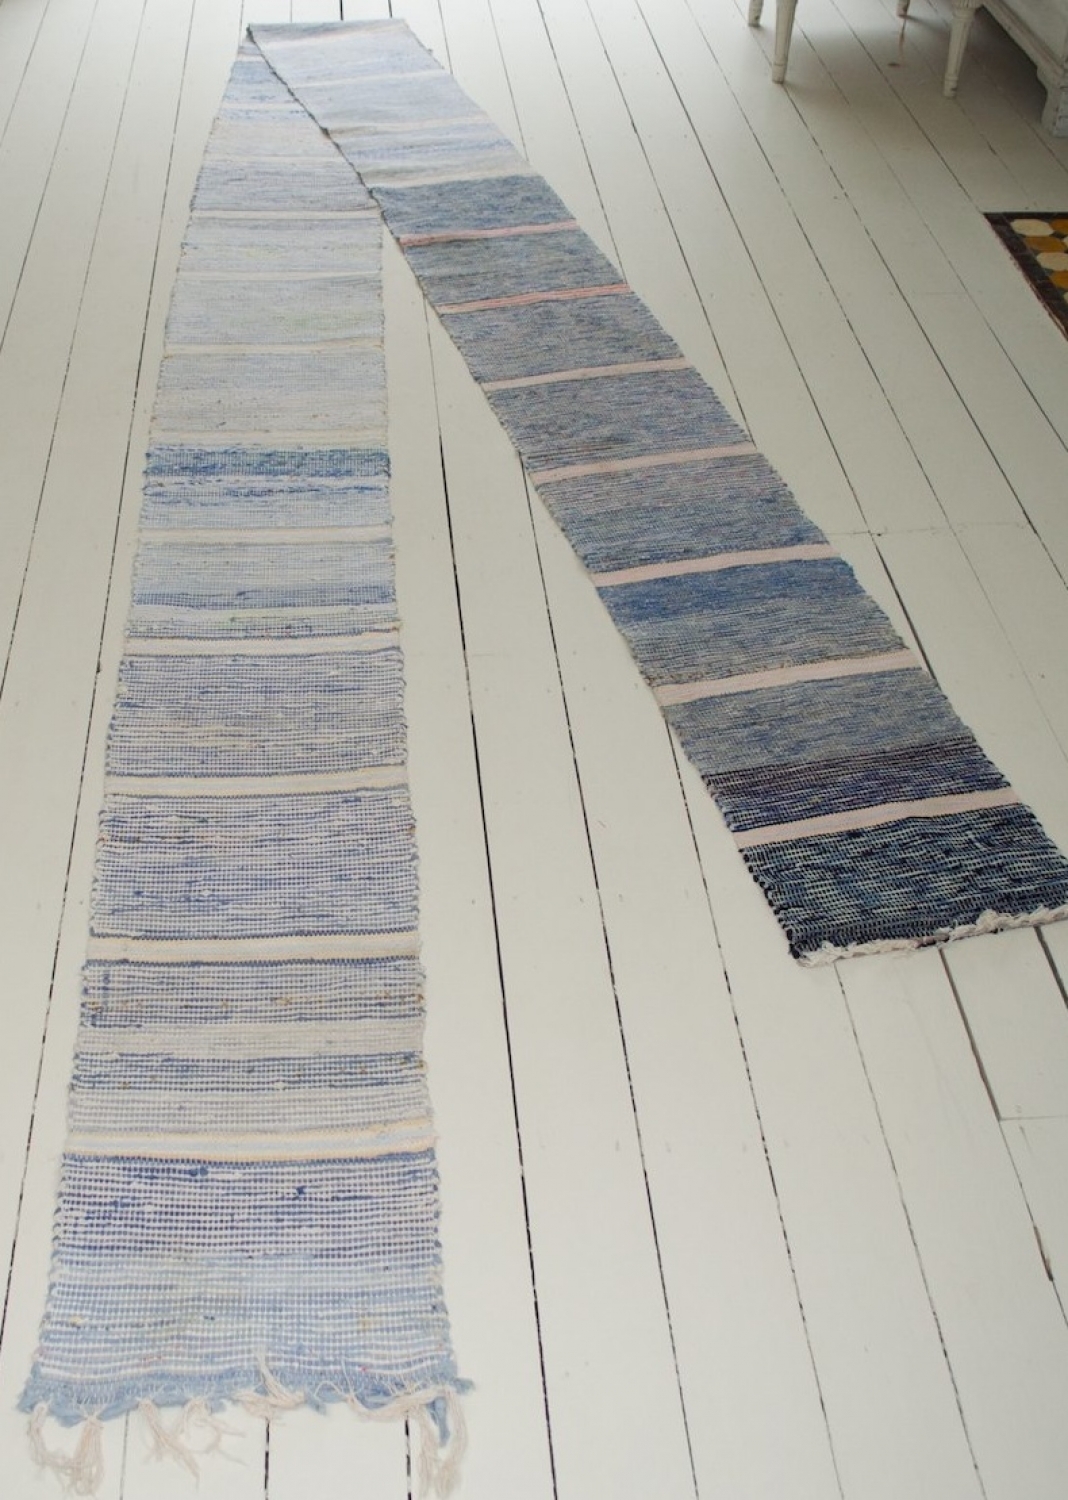 A Gorgeous Swedish Handwoven Rug - Roll